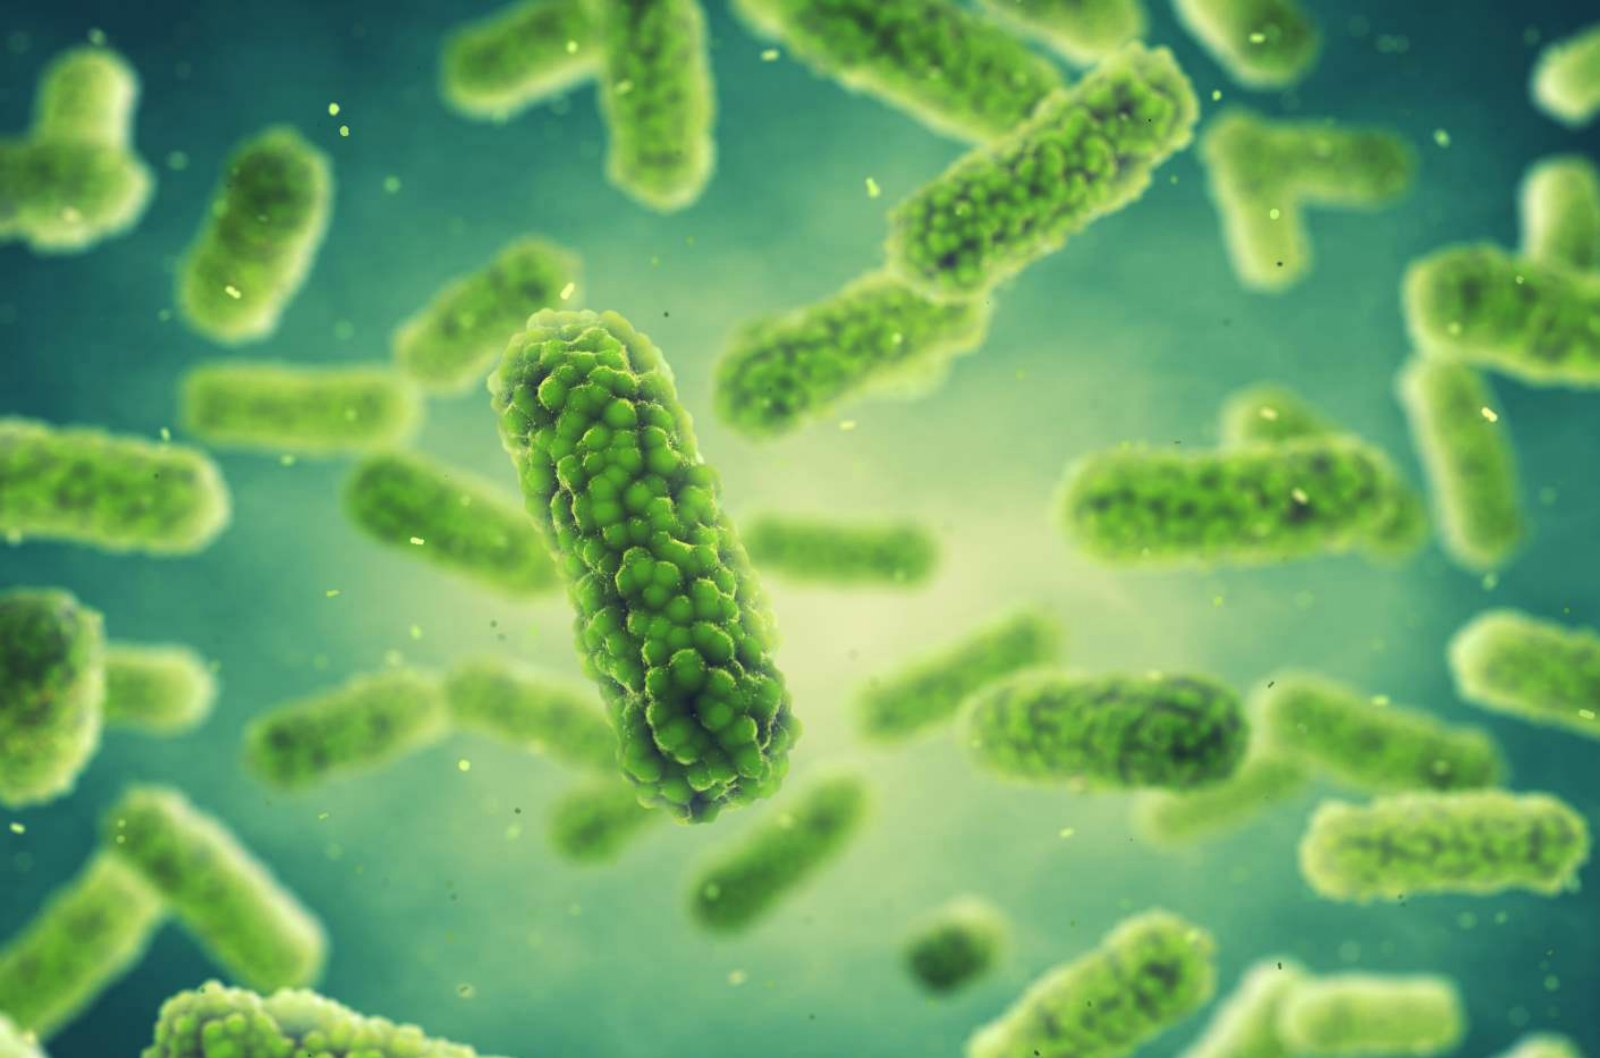 DNA Microarray Rapidly Profiles Microbial Populations